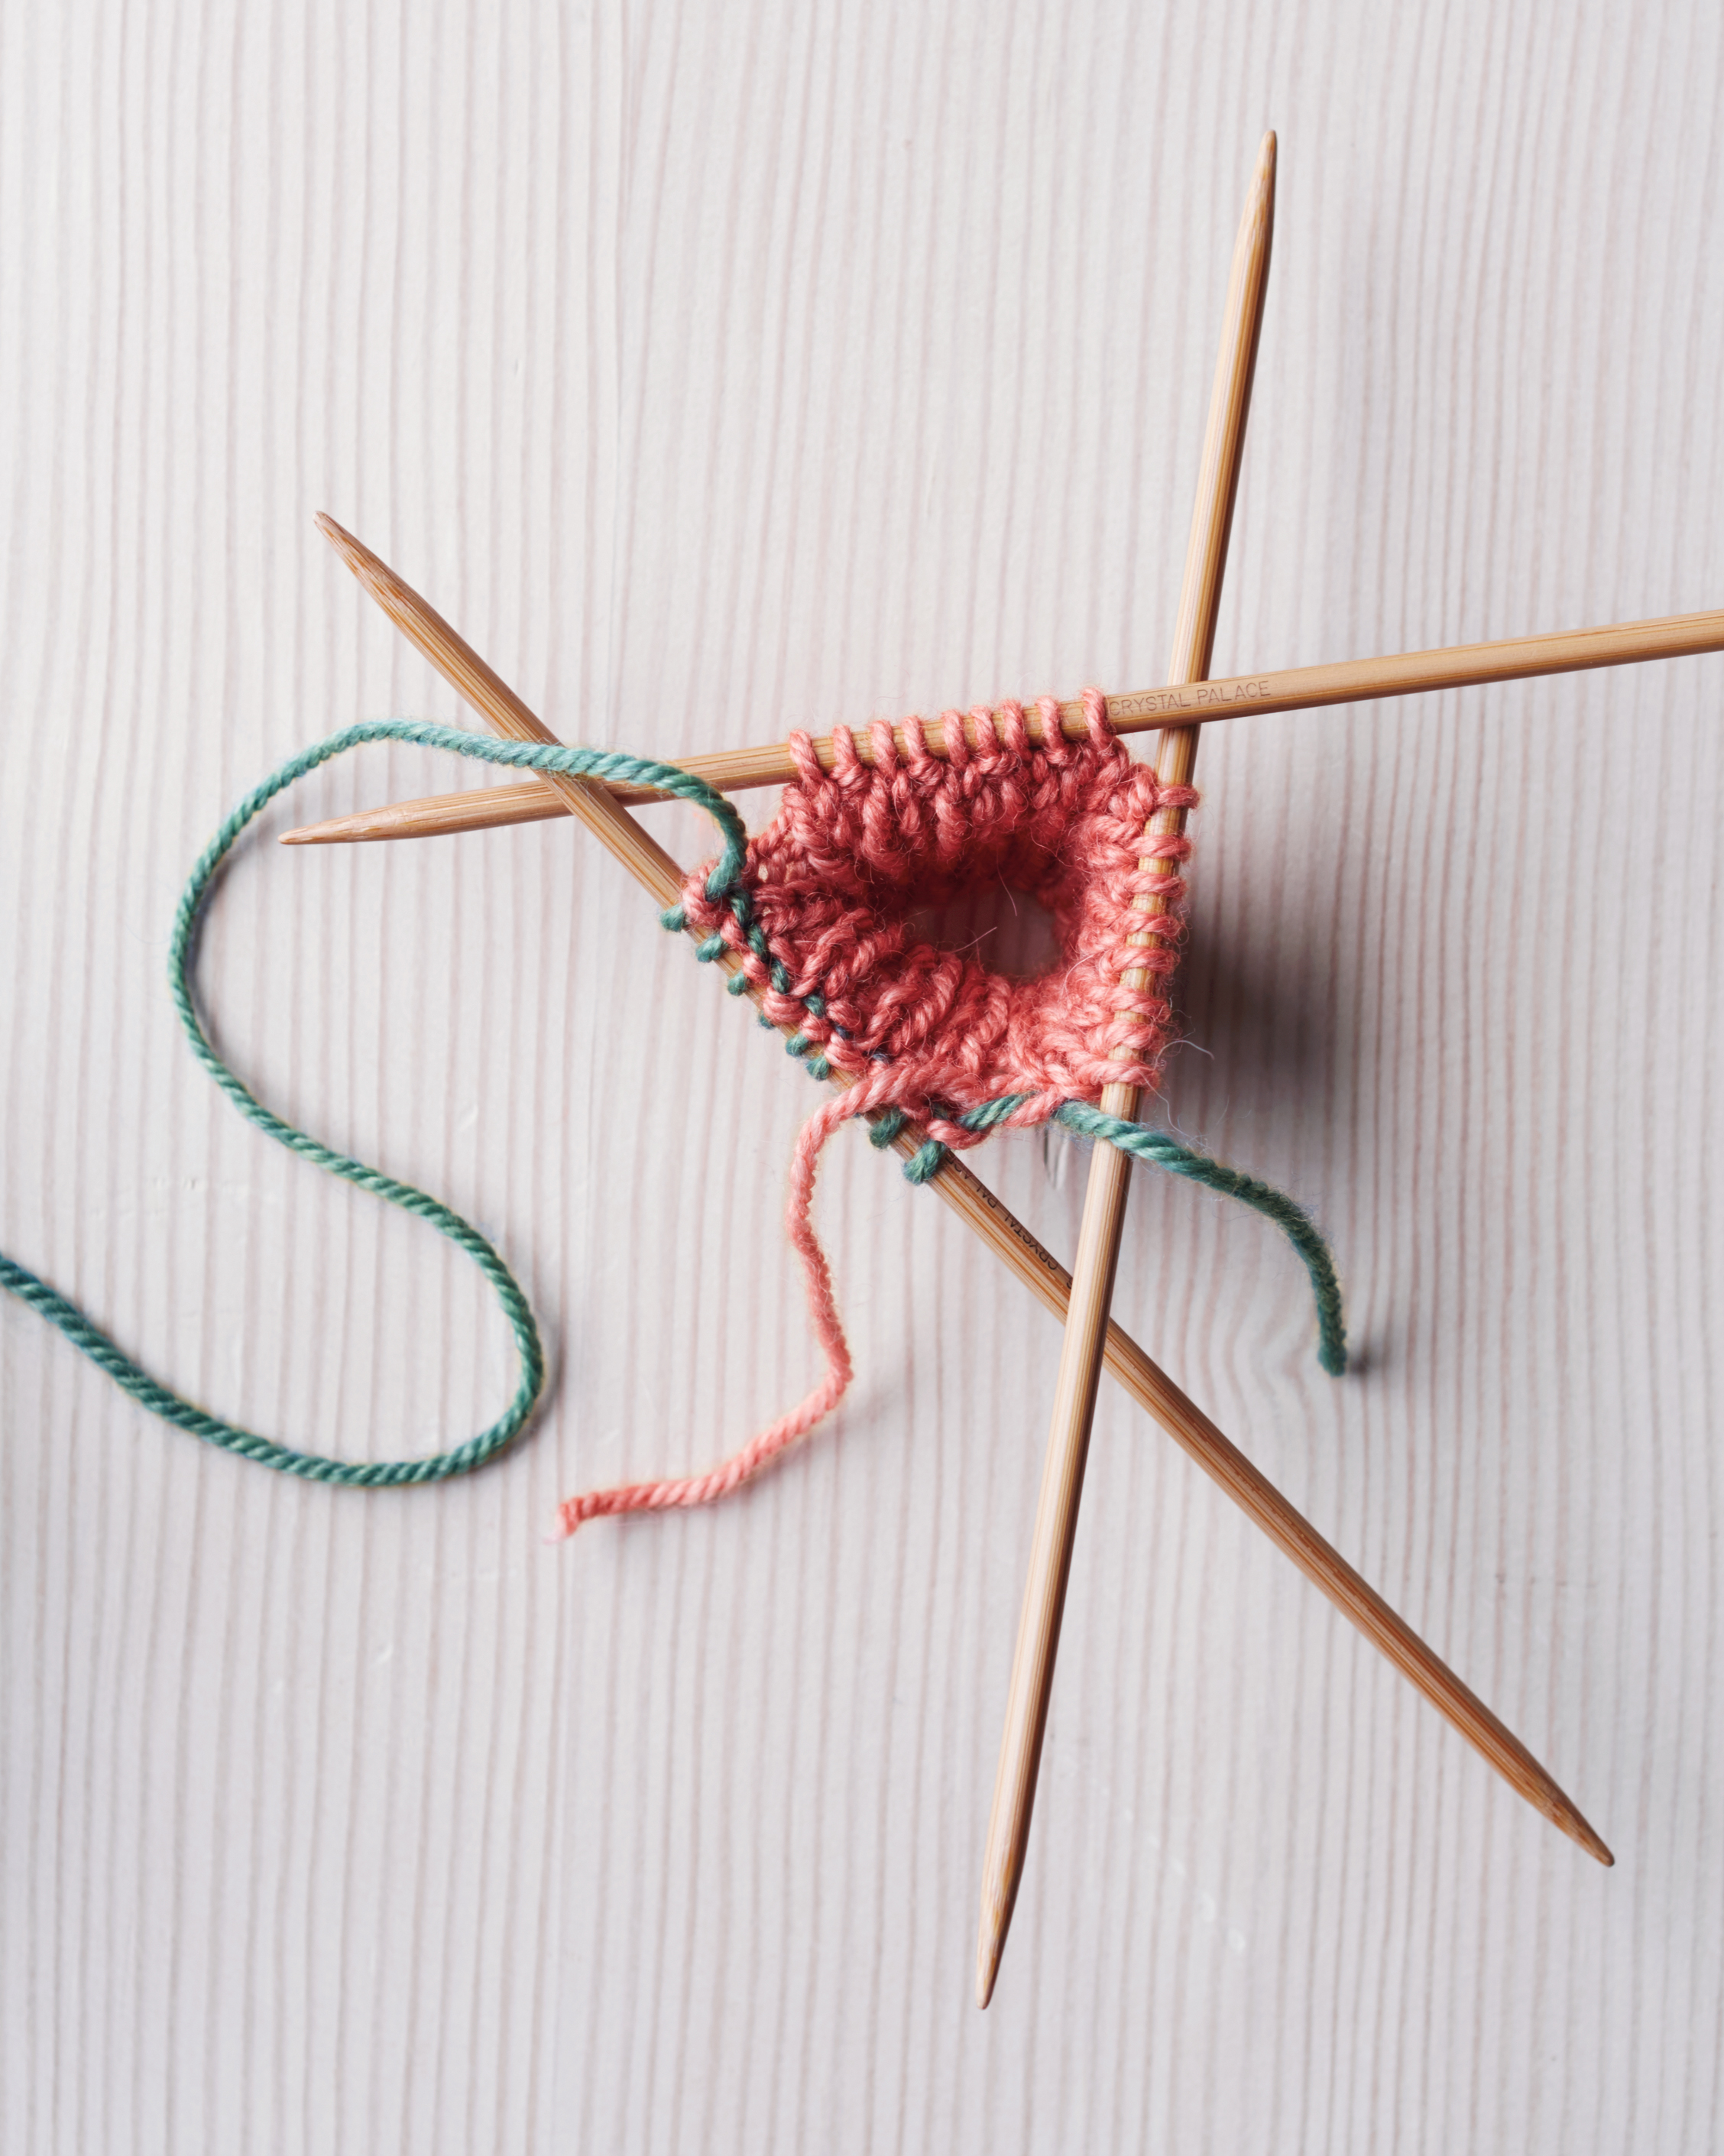 How to Use Double-Pointed Knitting Needles